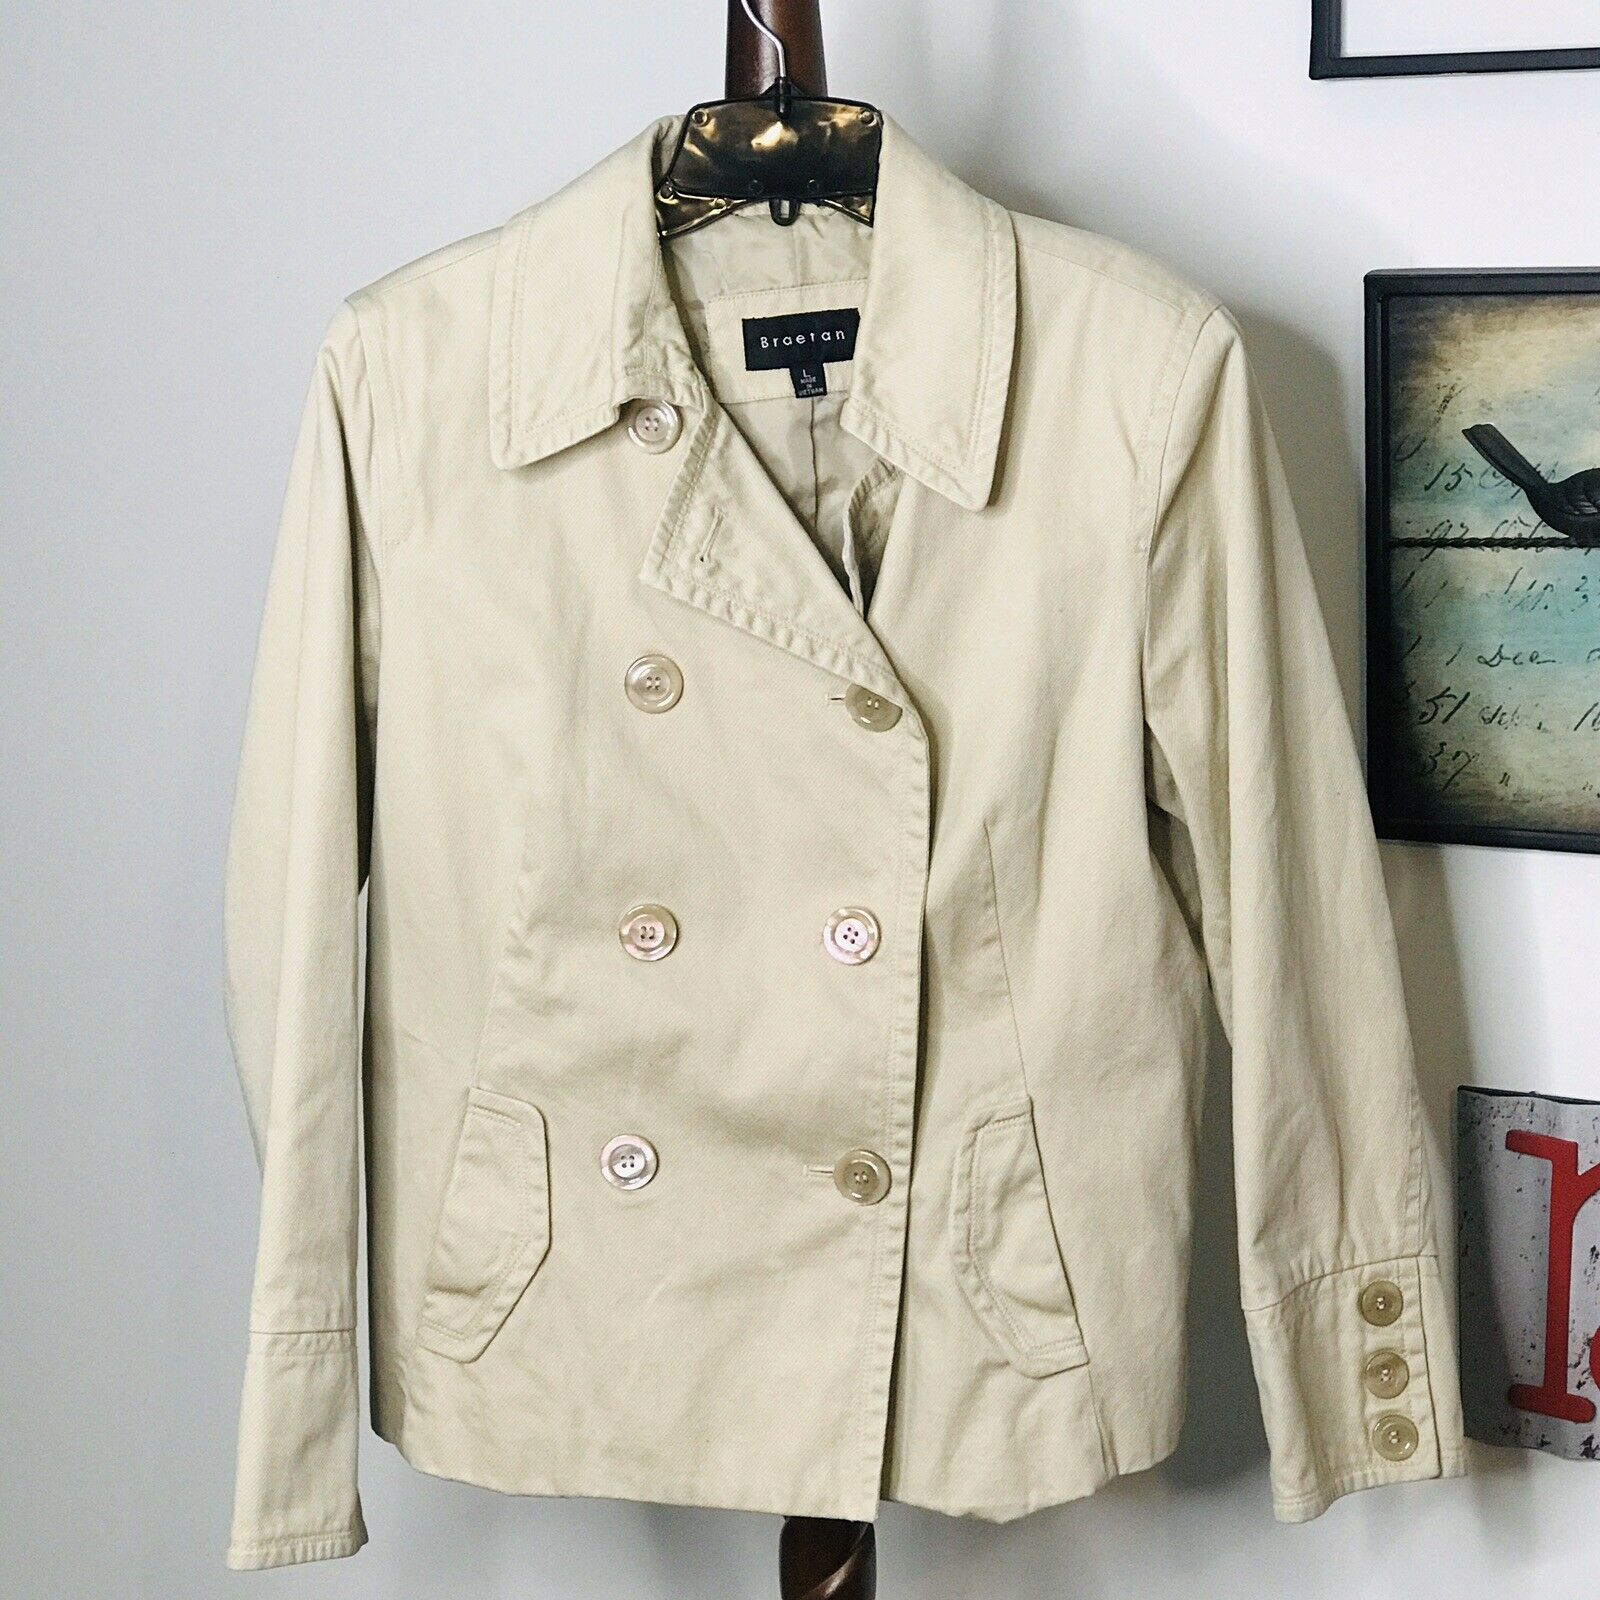 Braetan Womens Large Tan Double Breasted Lined Jacket NWOT